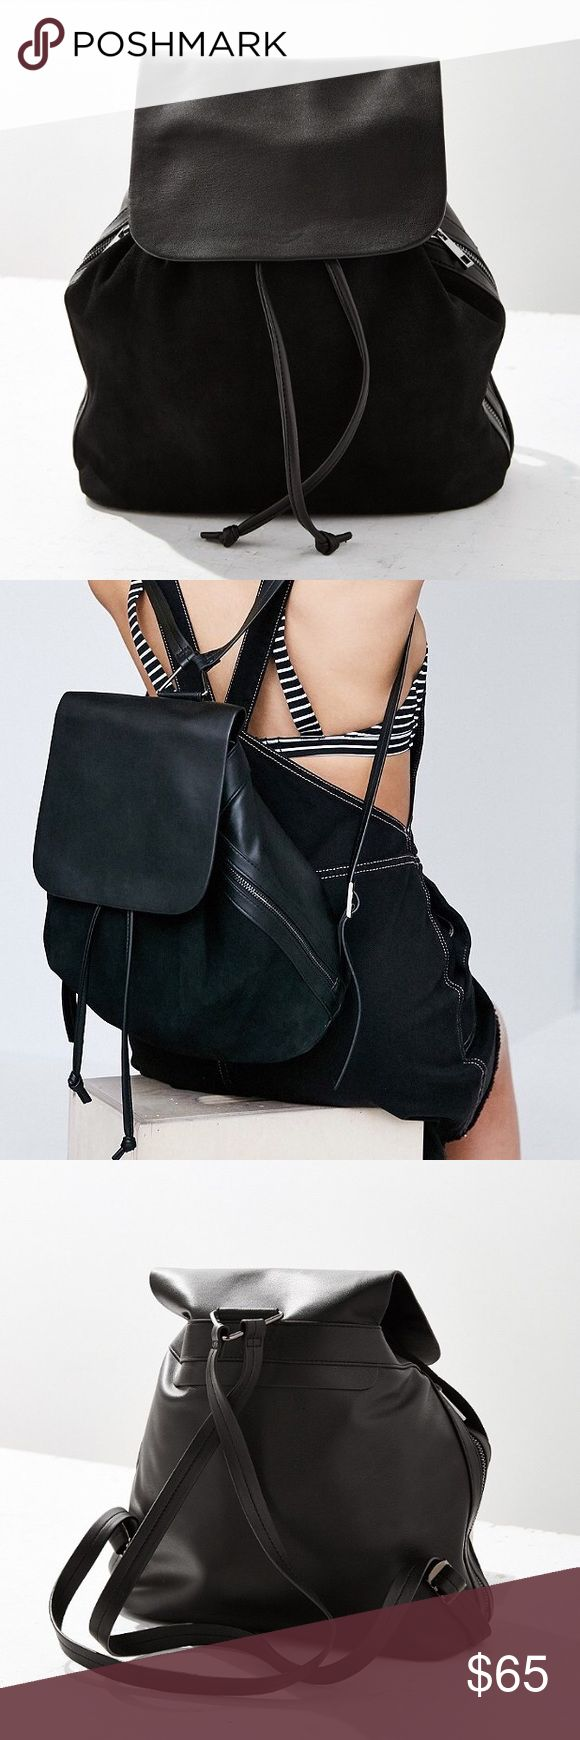 """Black suede backpack minimalist coachella festival Refresh your look with this sleek minimalist backpack, found exclusively at UO. Soft suede body with a spacious compartment and drawstring bucket cinched closure. Accented with faux leather paneling and buttoned flap-front with exposed zippered side pockets and skinny, adjustable shoulder straps.  Content + Care - Polyurethane, suede - Spot clean - Imported  Size - Length: 21.2"""" - Width: 5.51"""" - Height: 12.2"""" Urban Outfitters Bags Backpacks"""